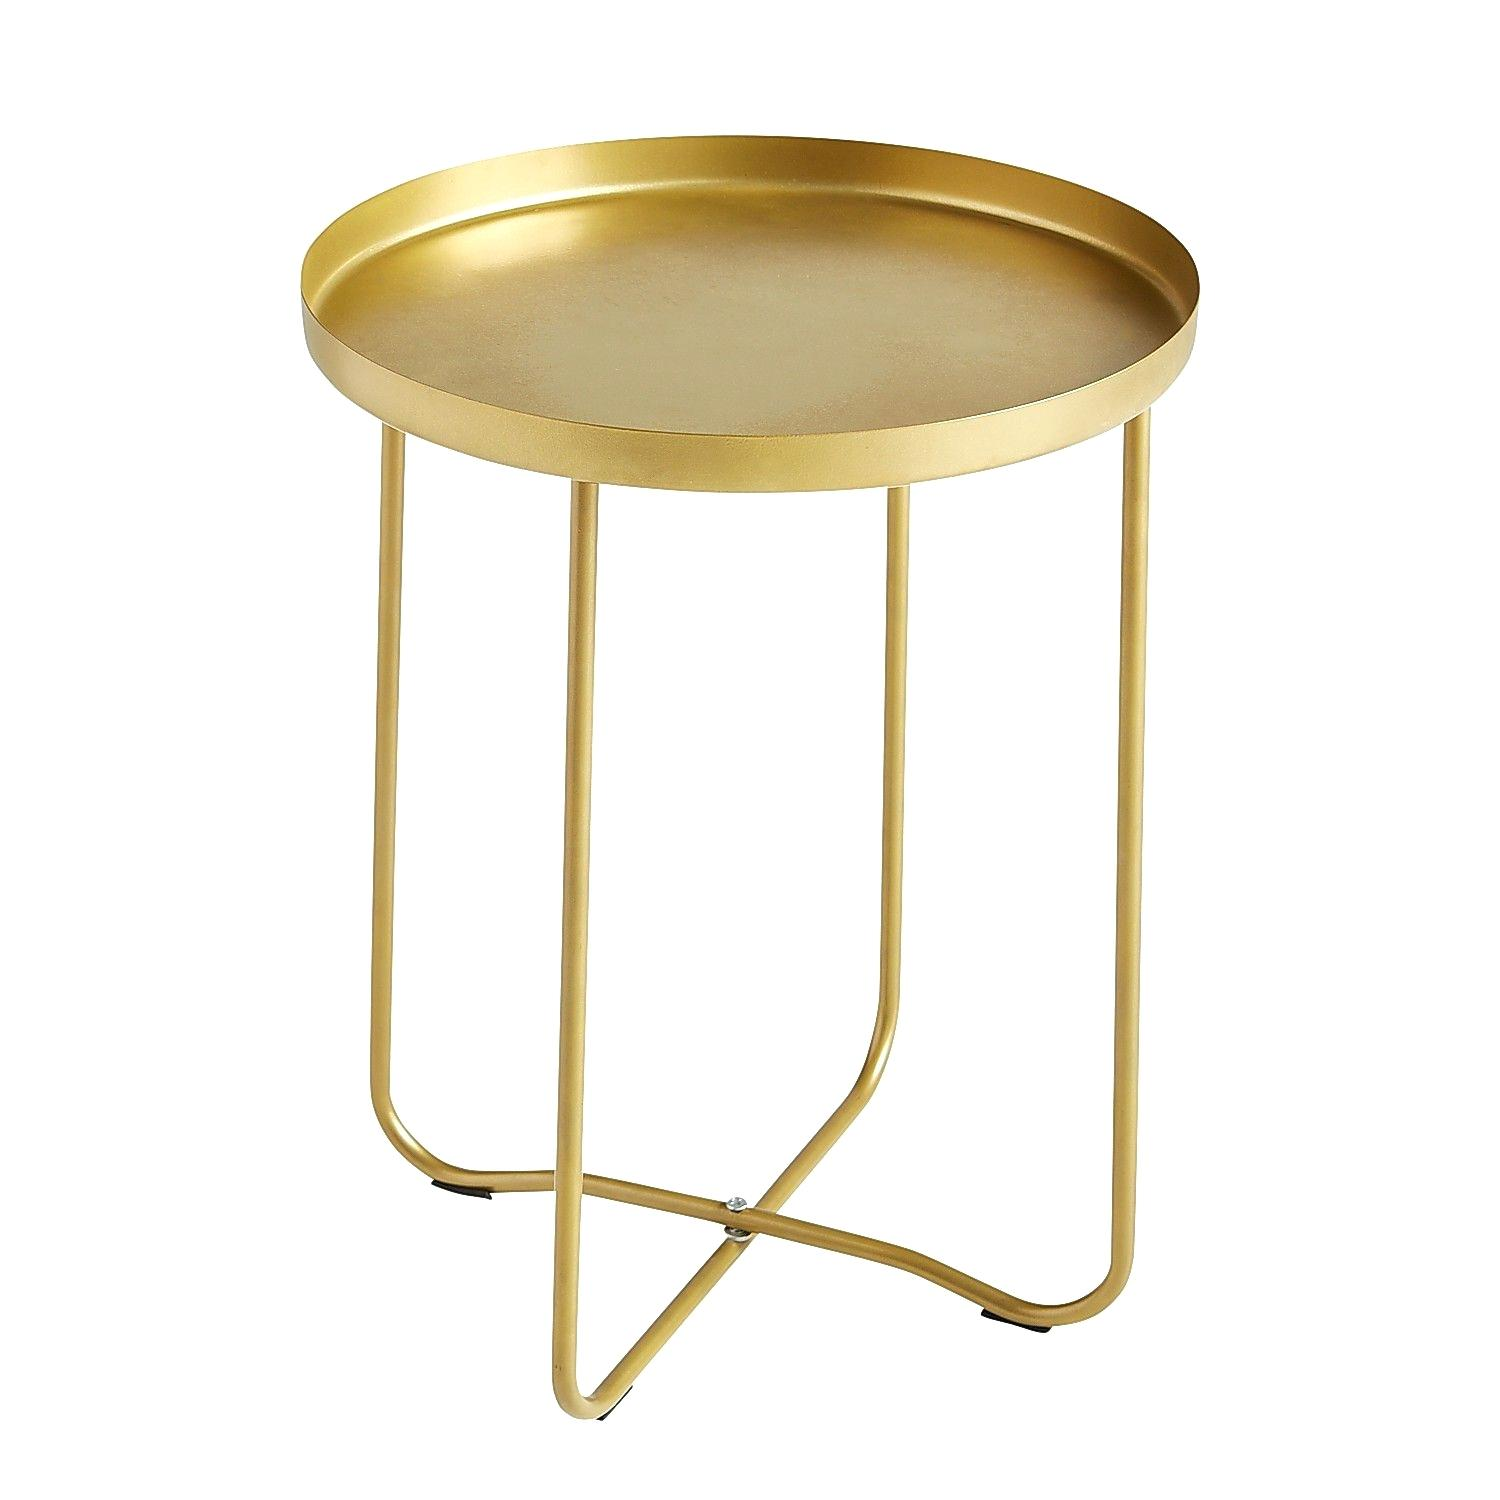 gold accent table looknook save this item open gallery tray antique faceted with glass top skinny runner vintage sofa mirror coffee grey cabinet rectangular furniture cover tall